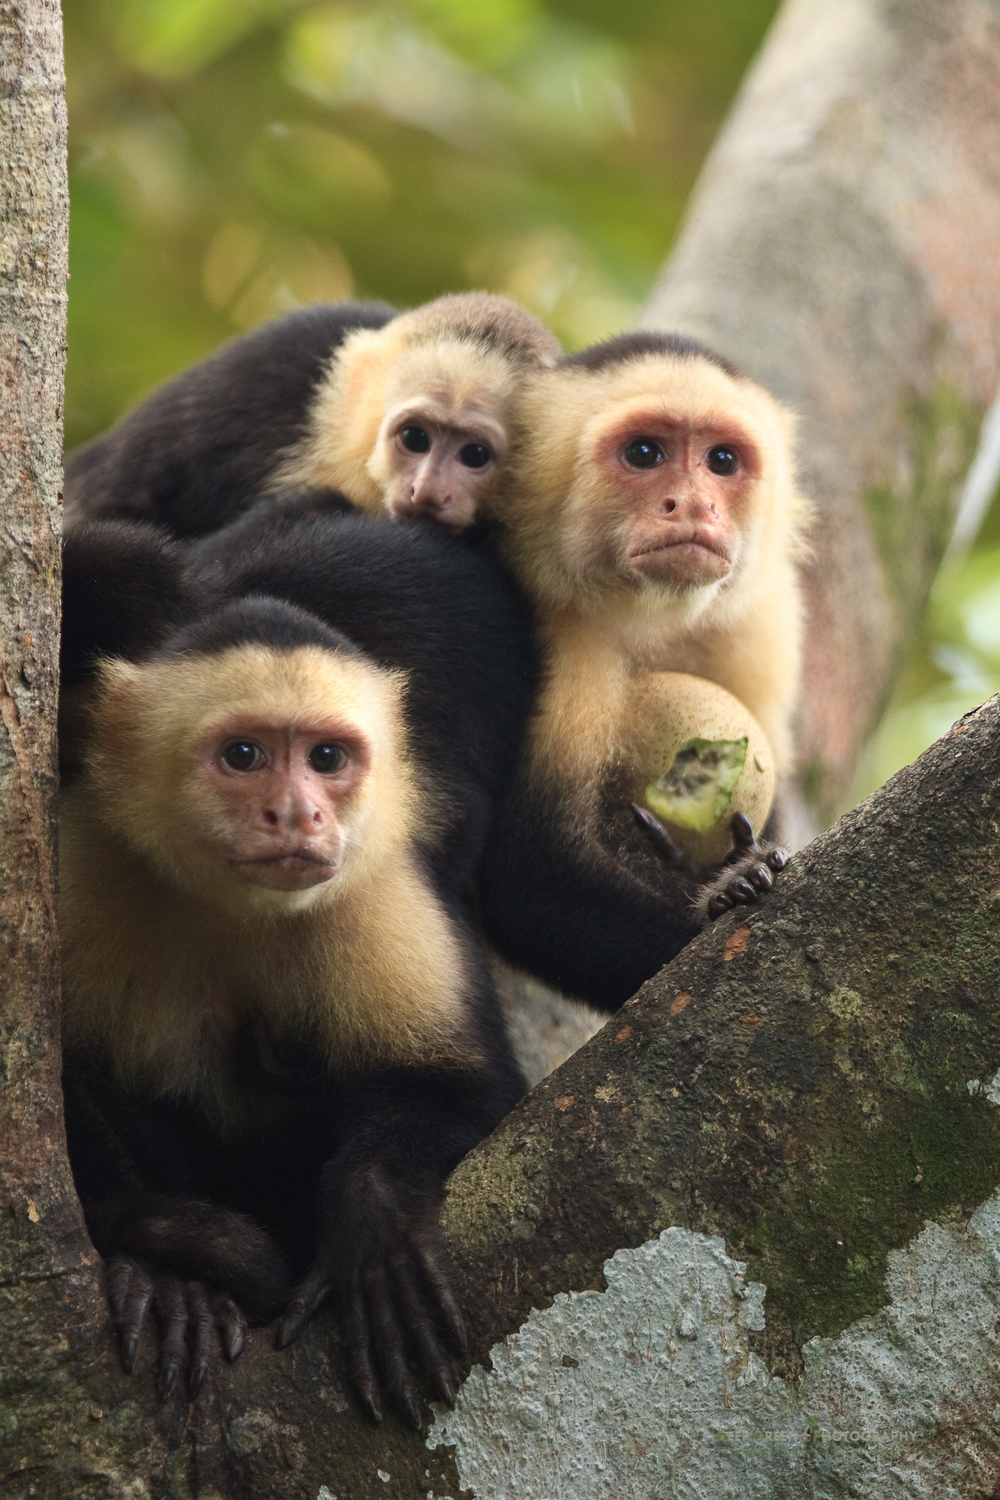 White-faced capuchin monkey (Cebus capucinus), family portrait, Costa Rica